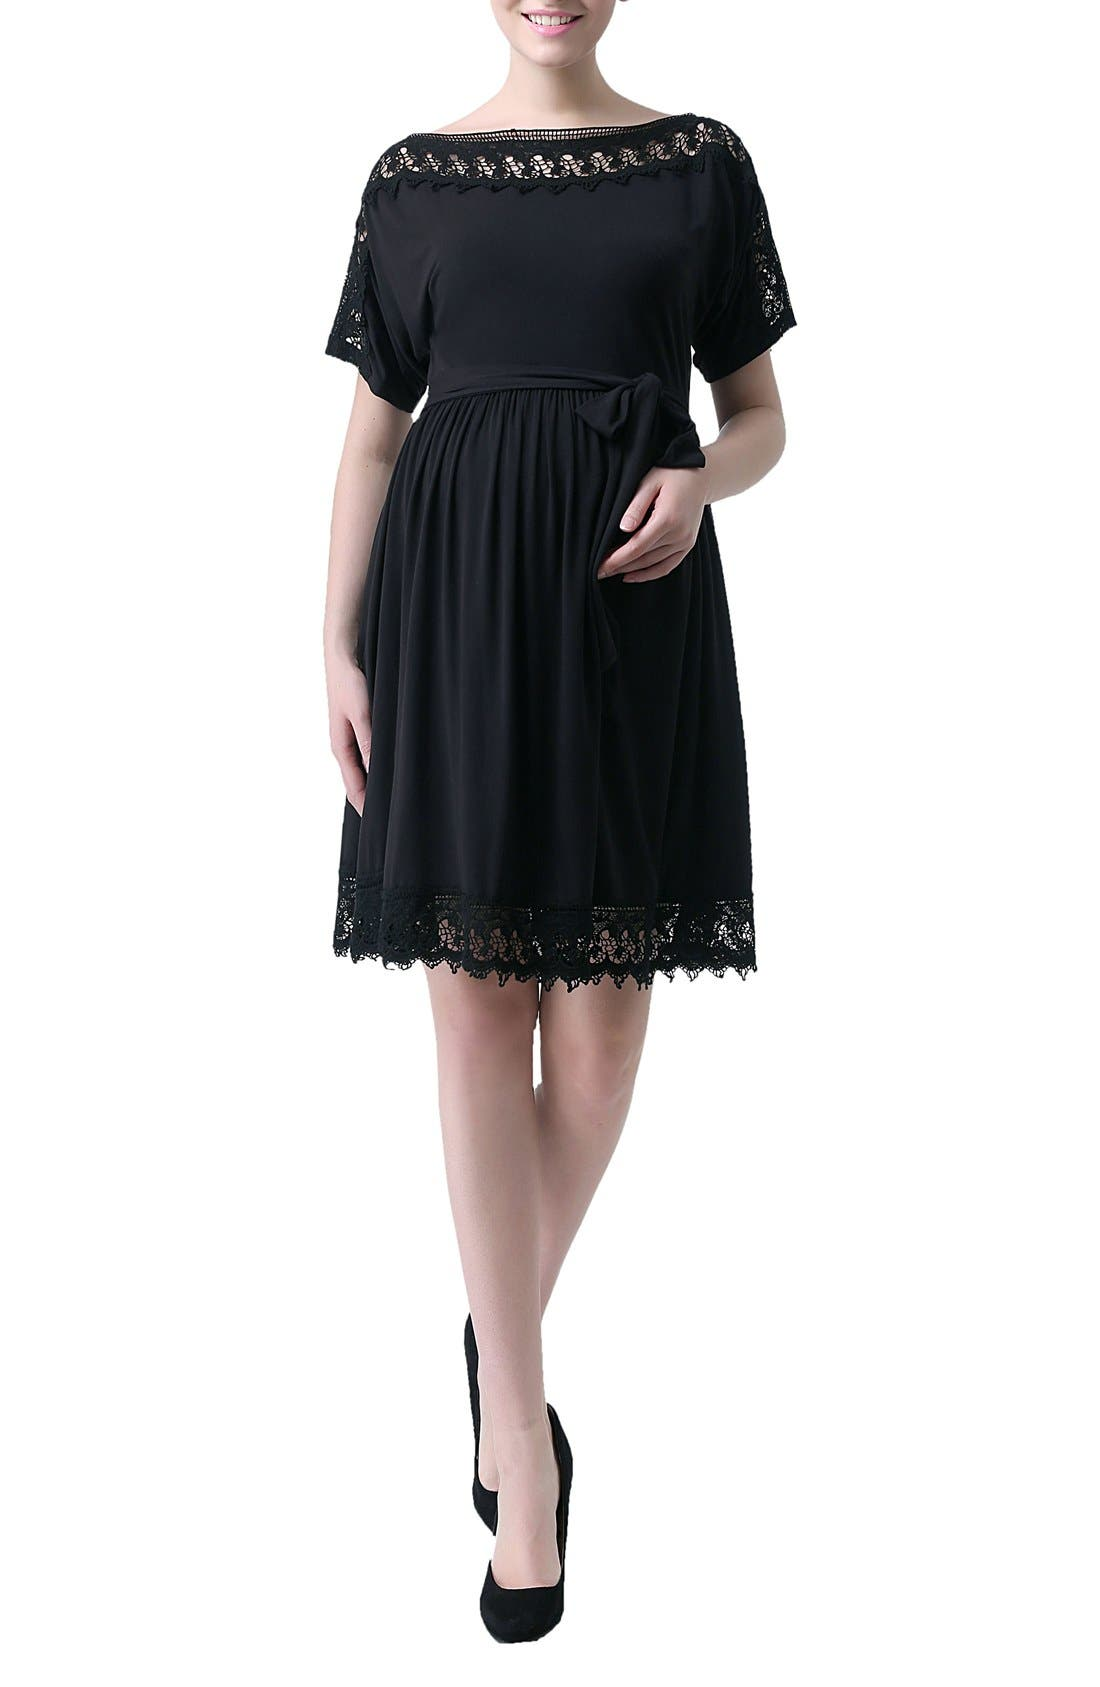 KIMI AND KAI 'Elsie' Crochet Trim Maternity Dress